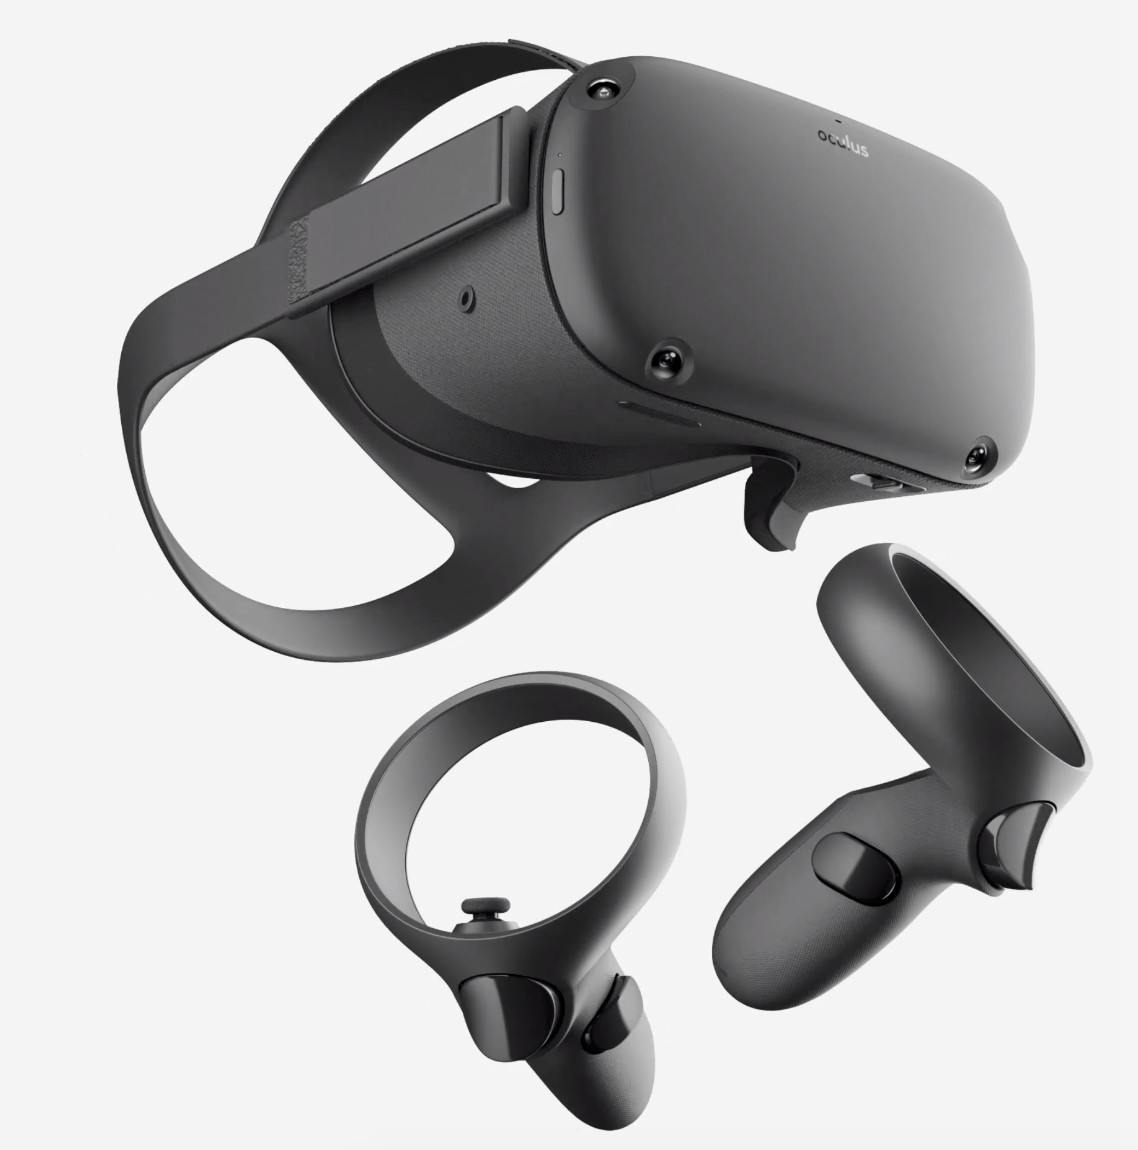 The Oculus Quest makes for a great innovative tech gift for your friends and family members